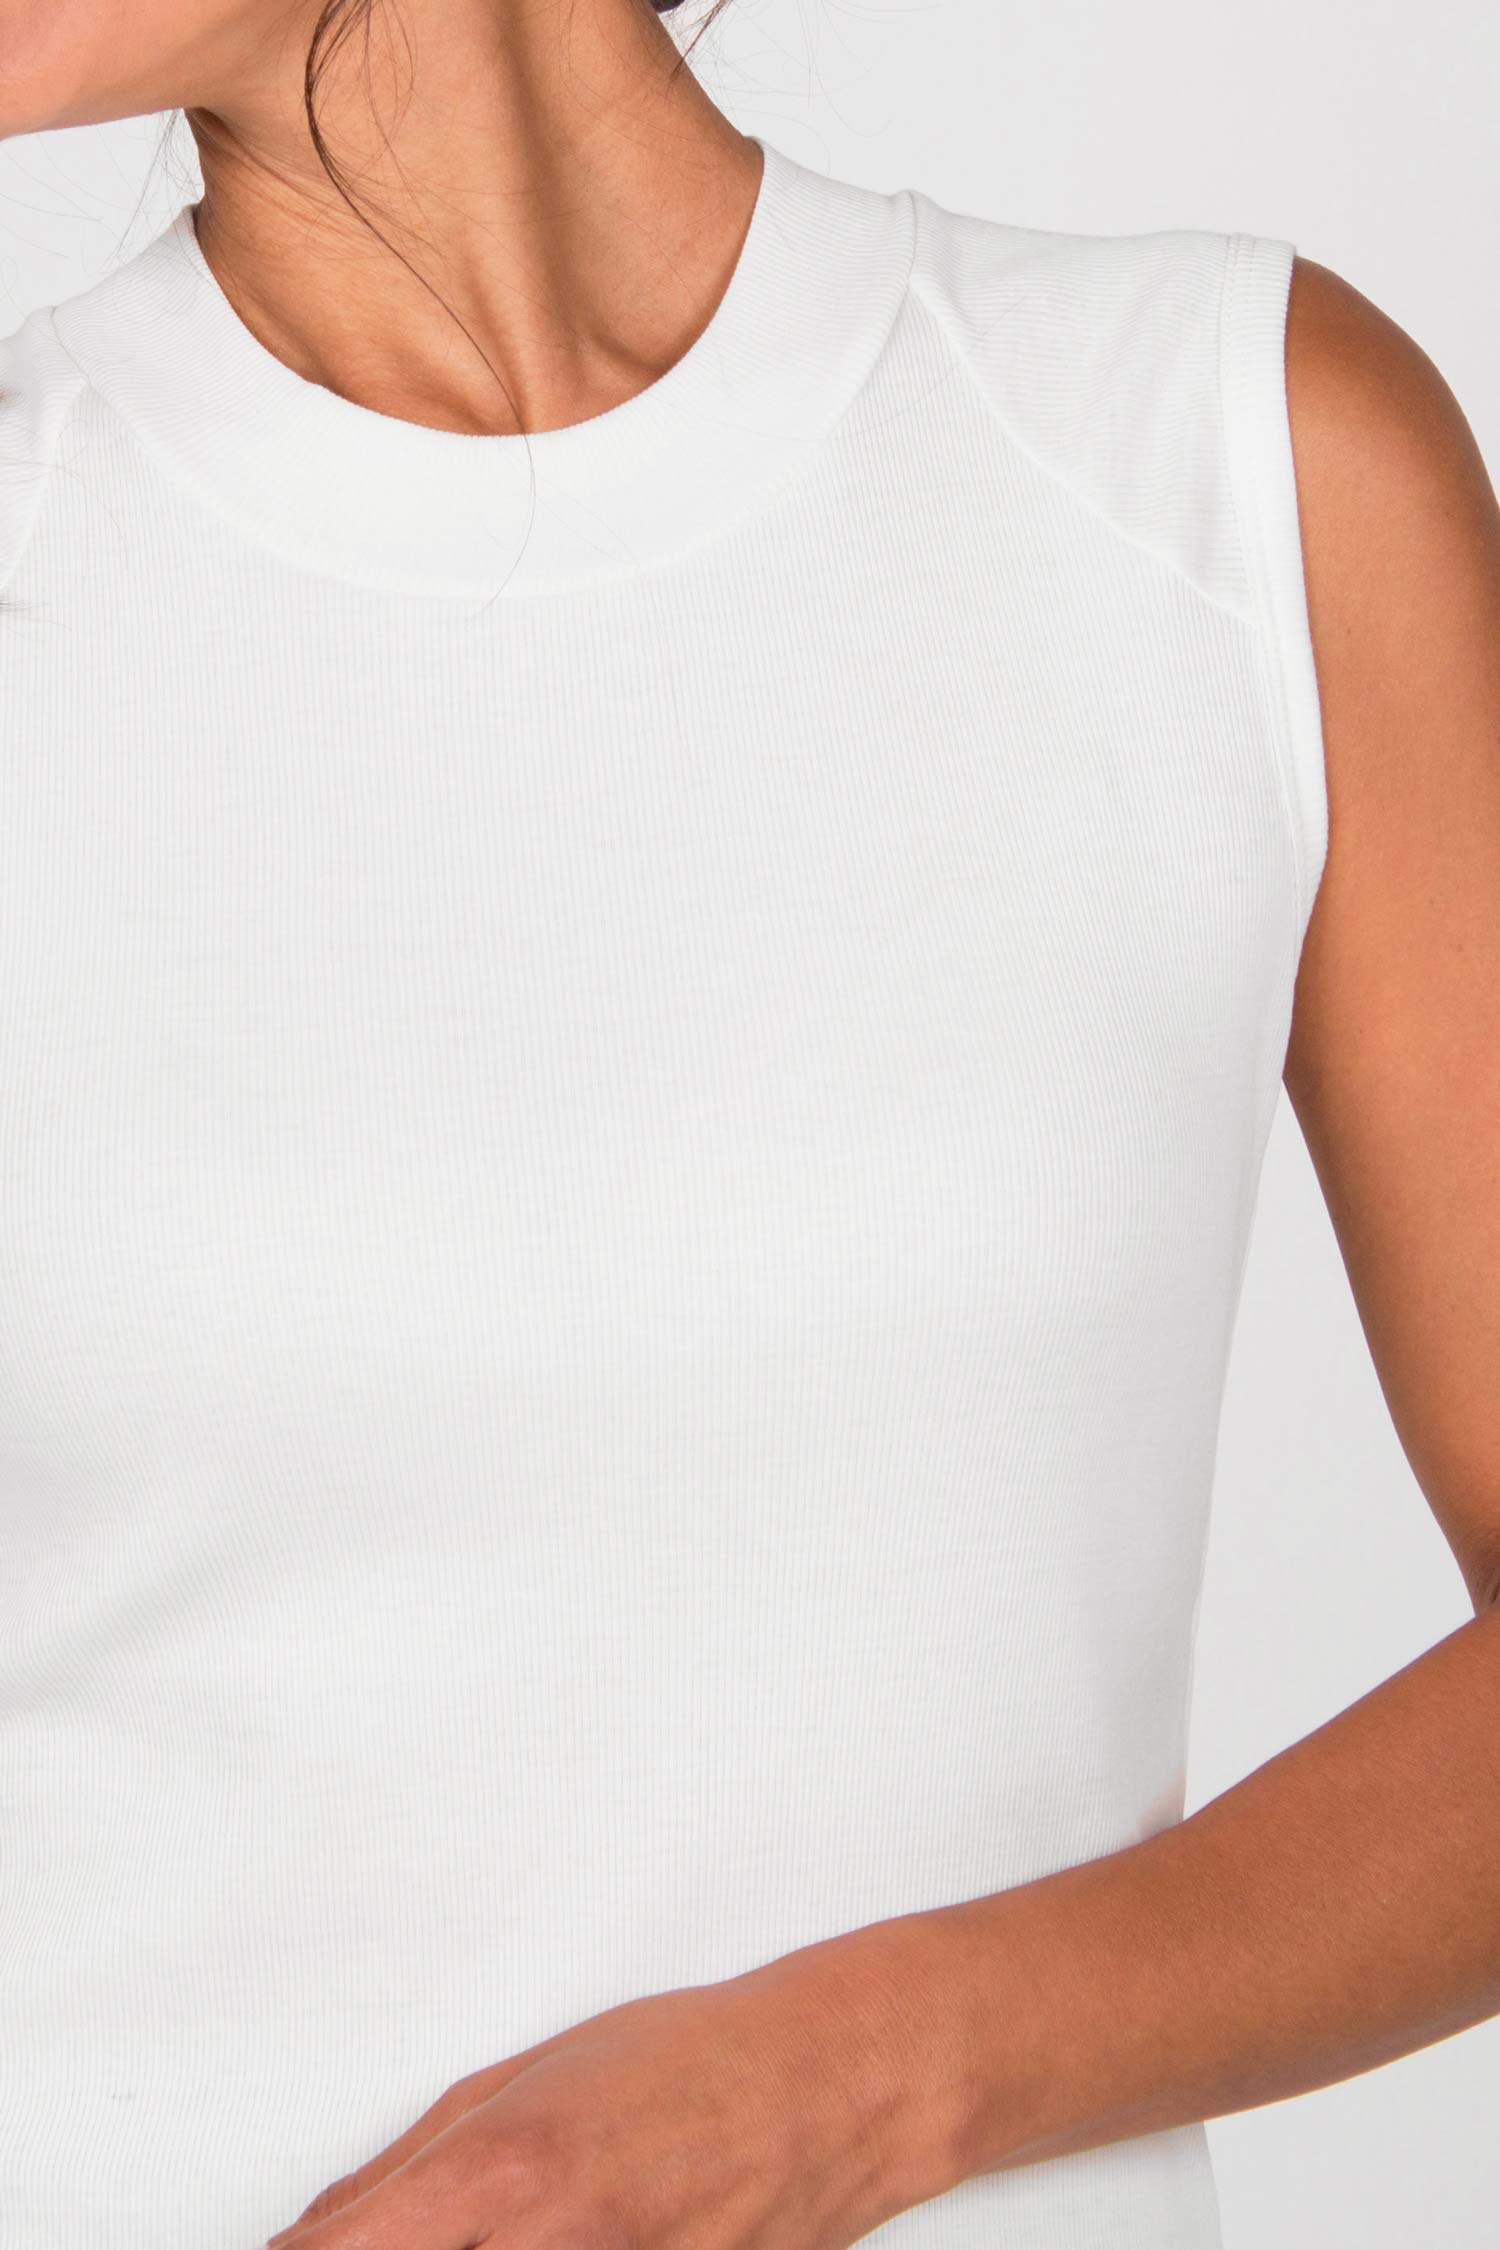 Womens Mock Neck Tank Top white | Organic Cotton Clothing for Women